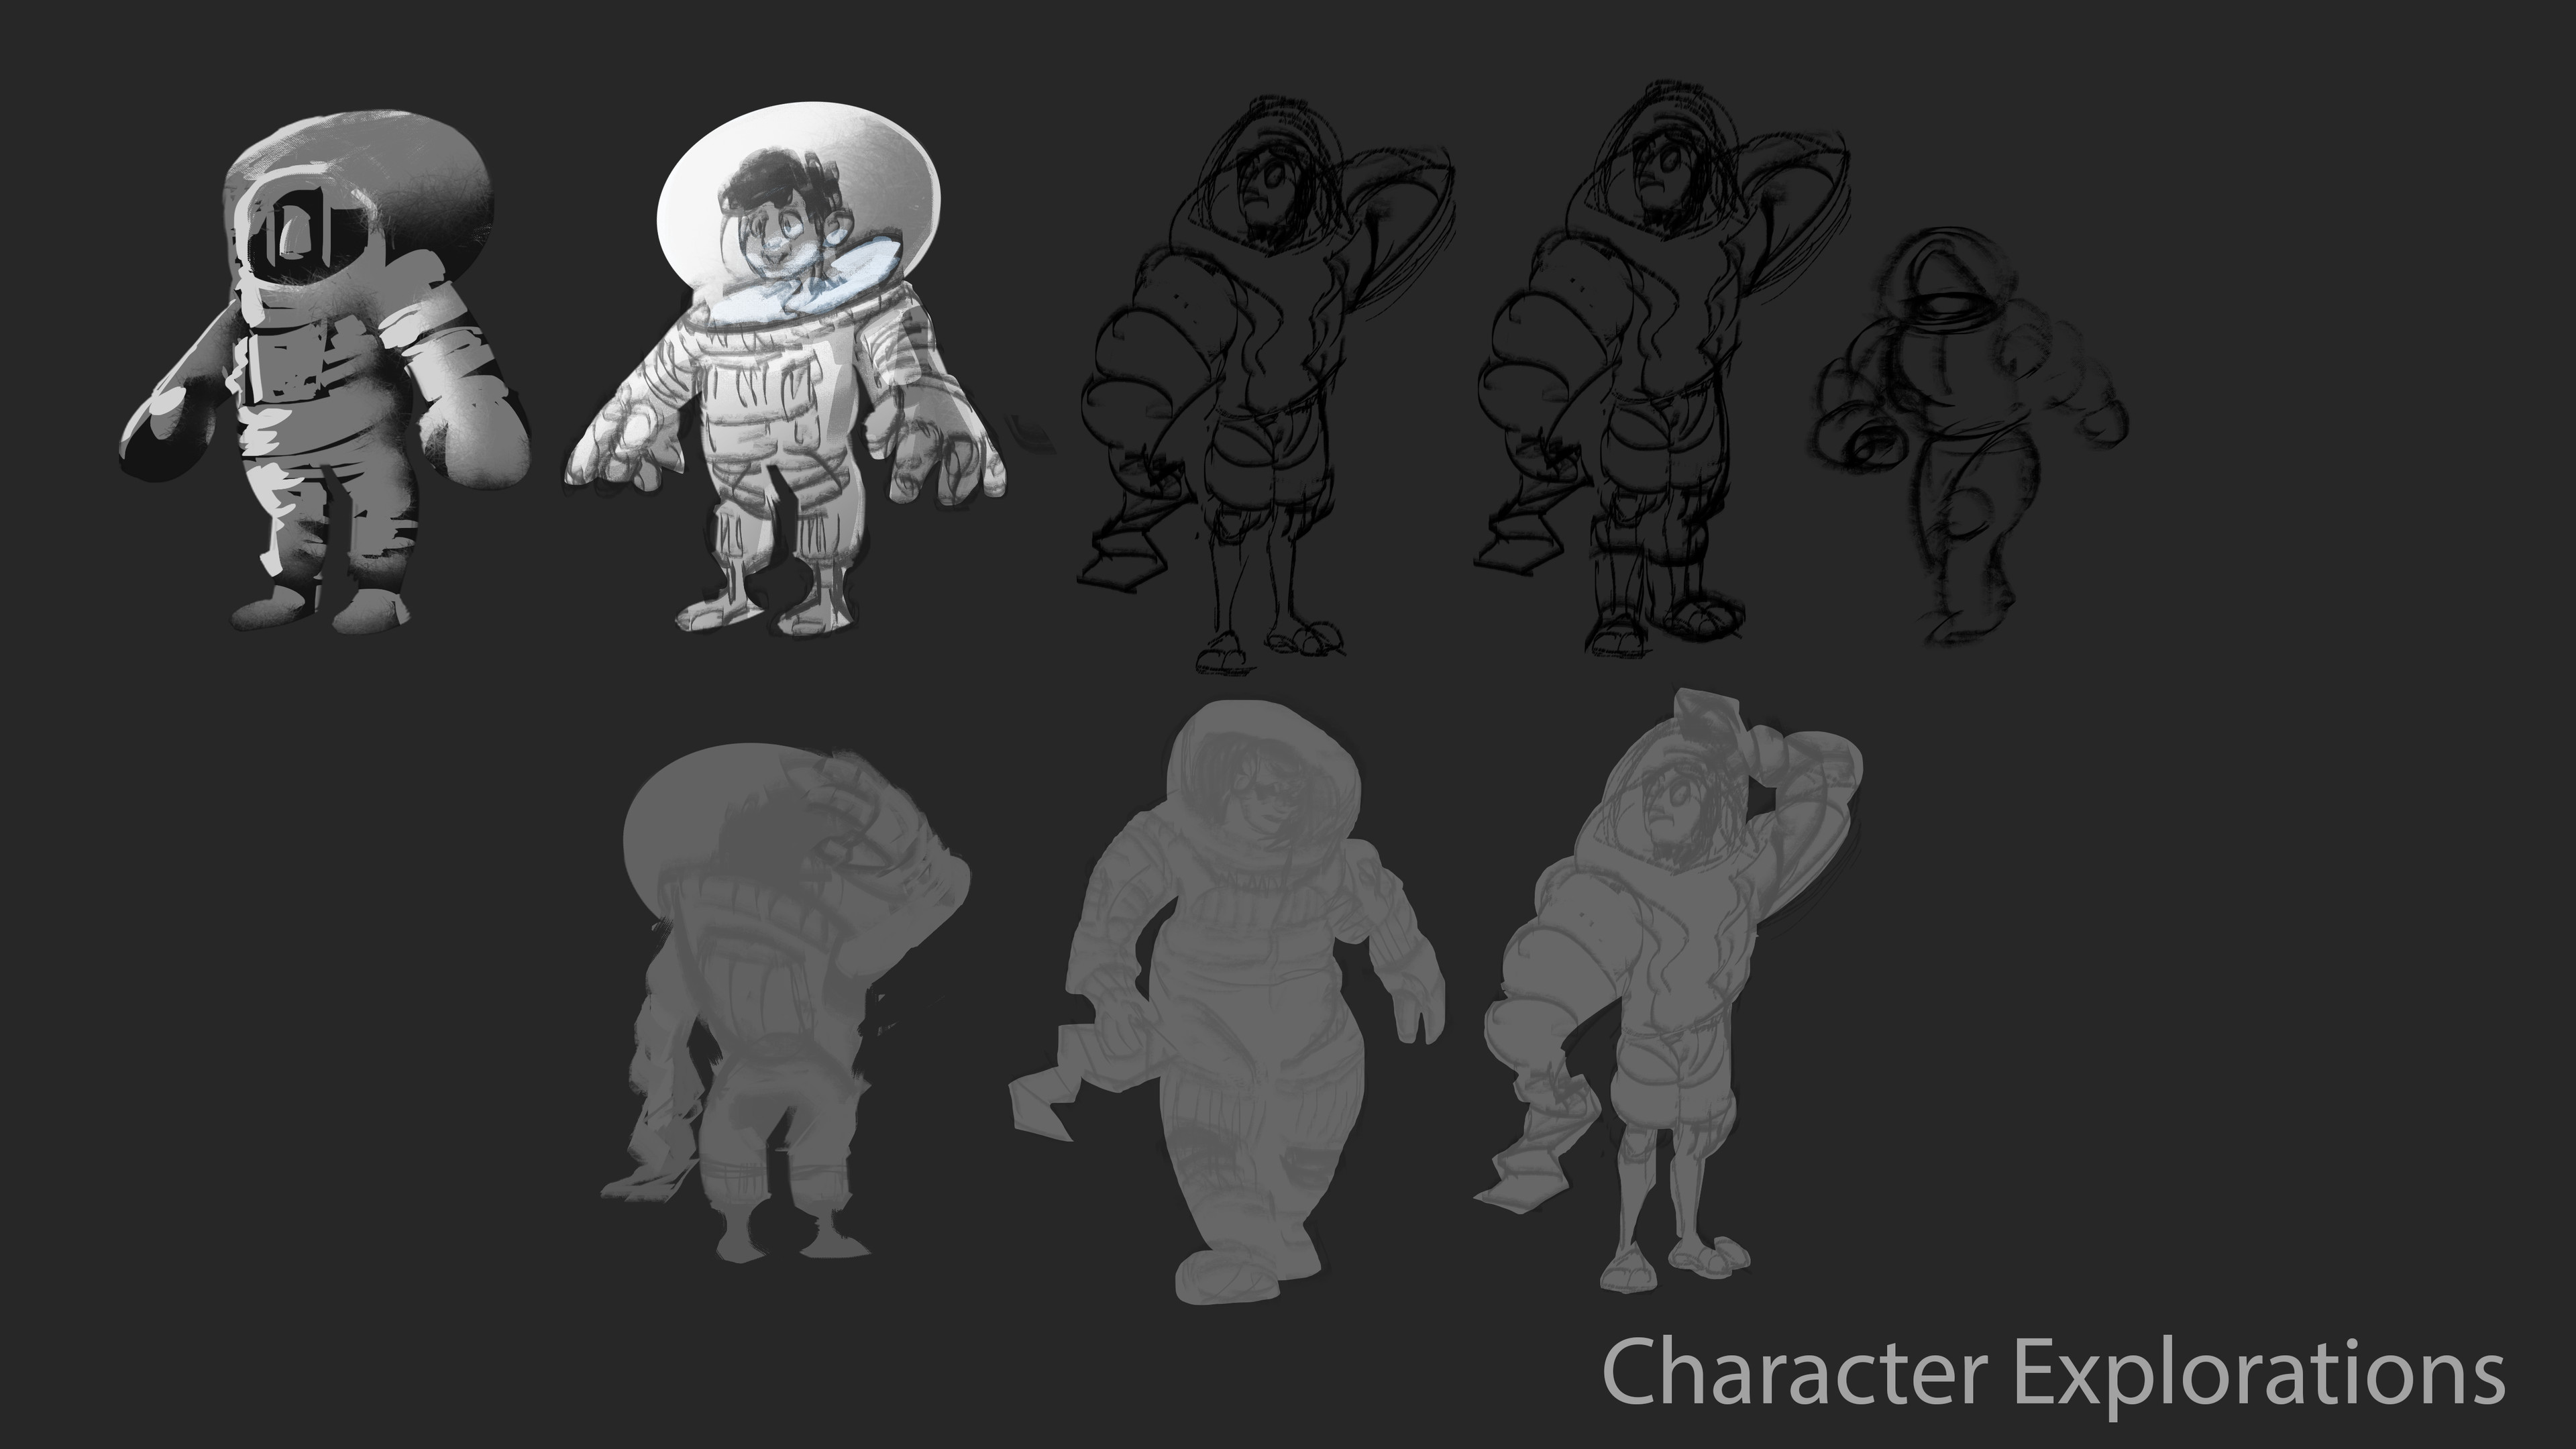 Early Character Explorations